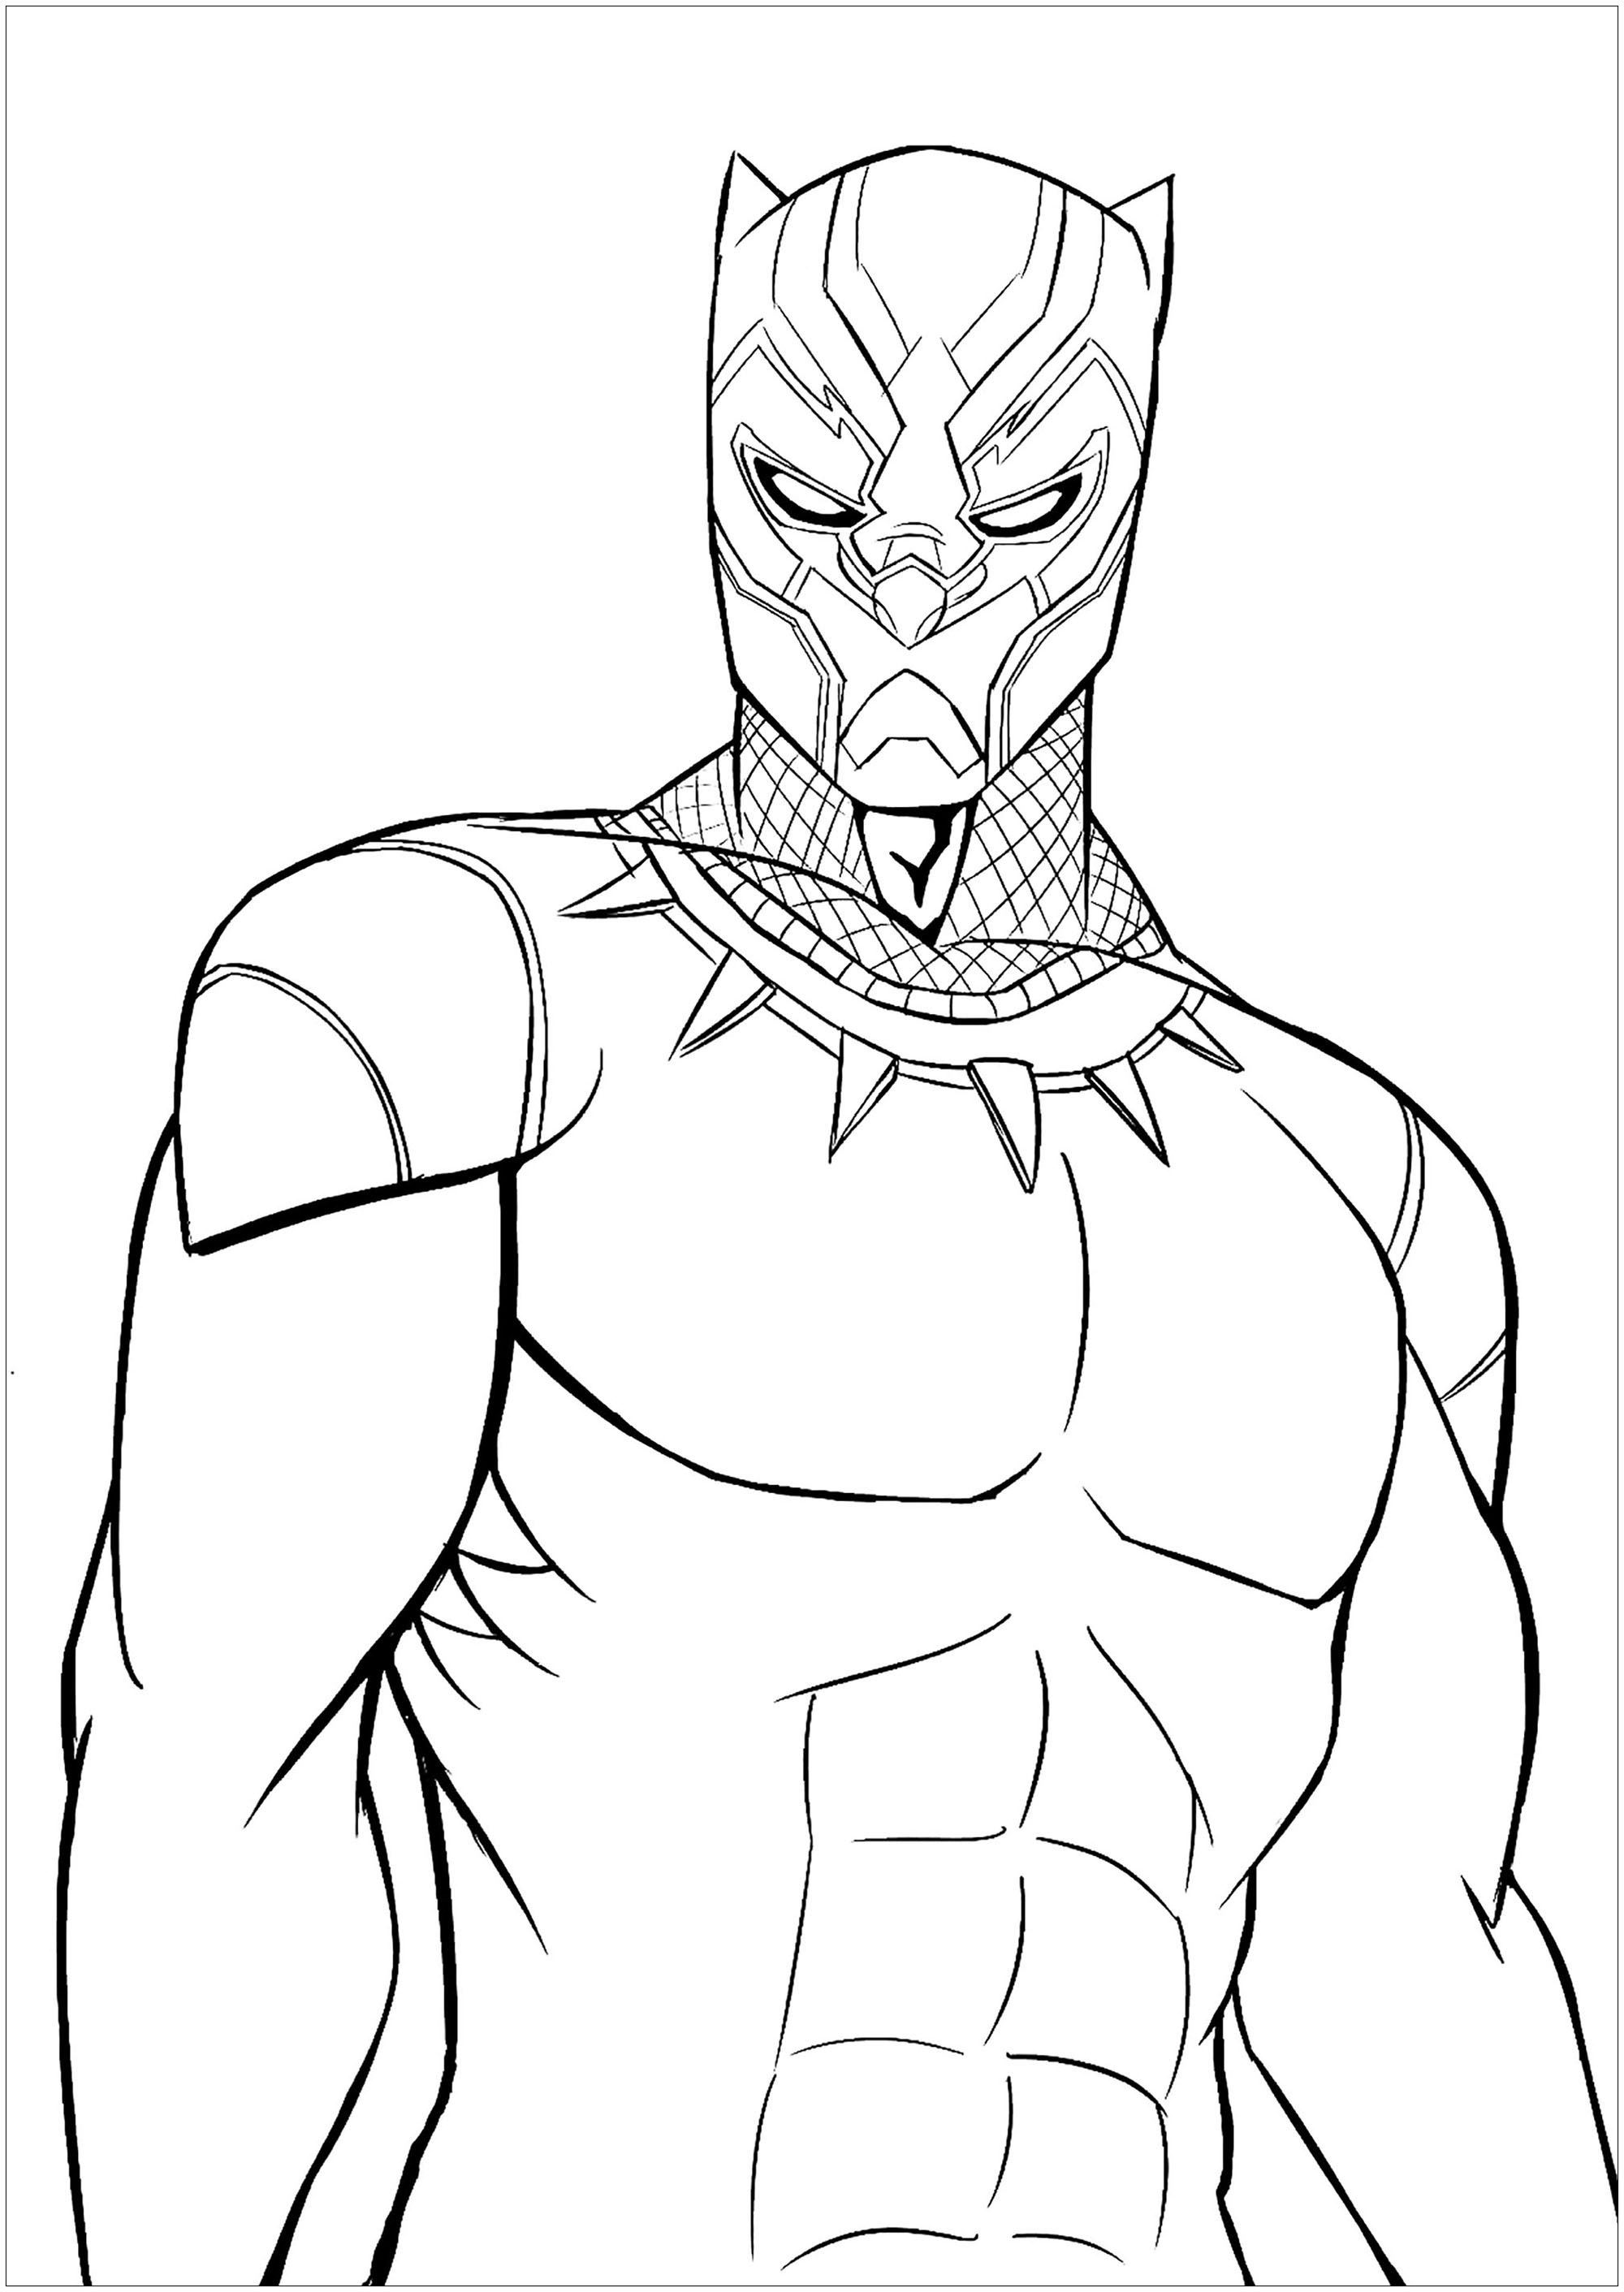 Black Panther Coloring Pages Best Coloring Pages For Kids